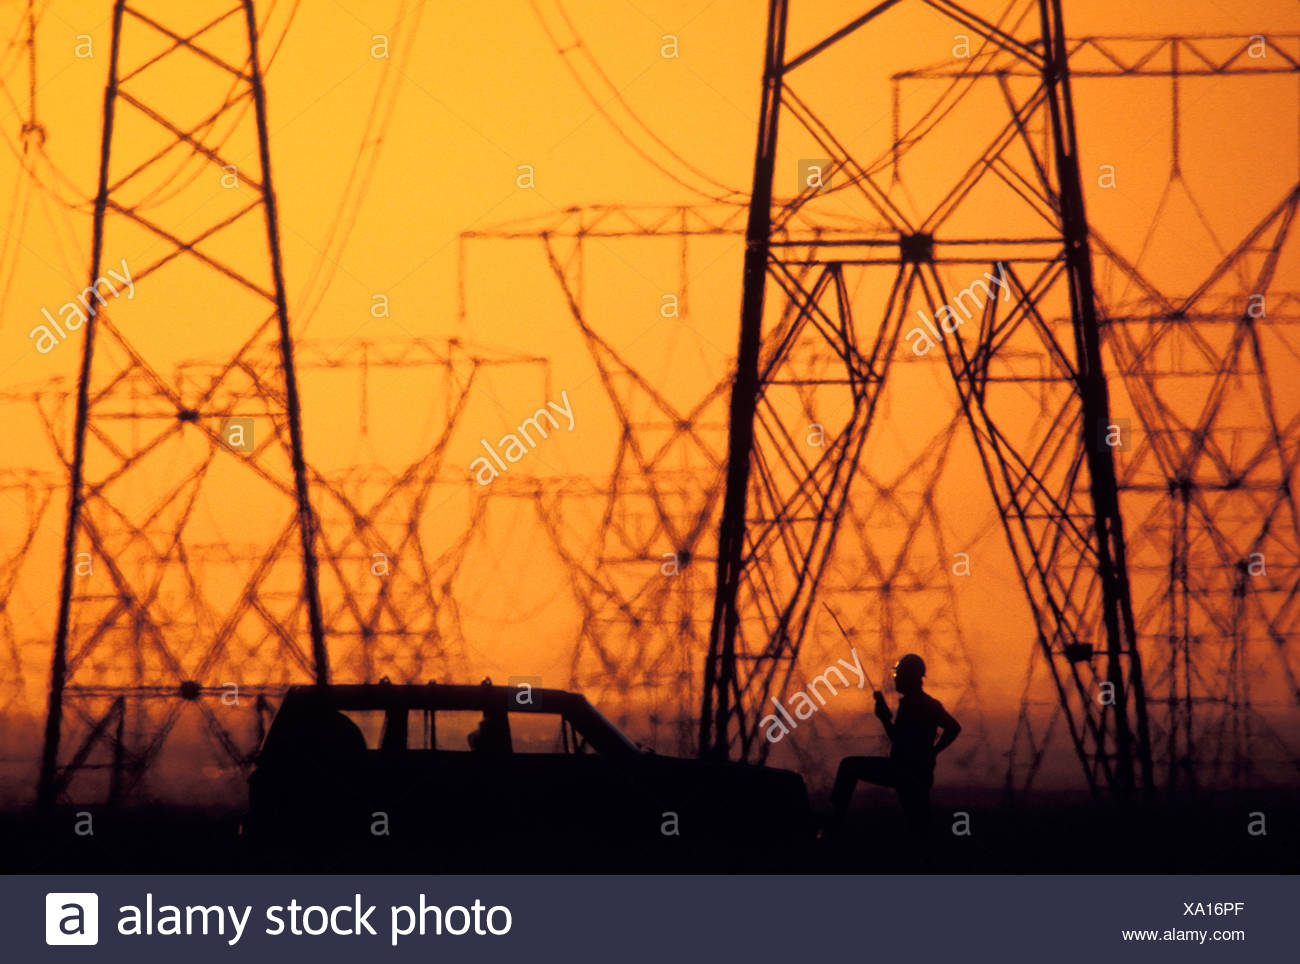 Silhouette of construction worker, car and electricity pylons with sunset in background - Stock Image